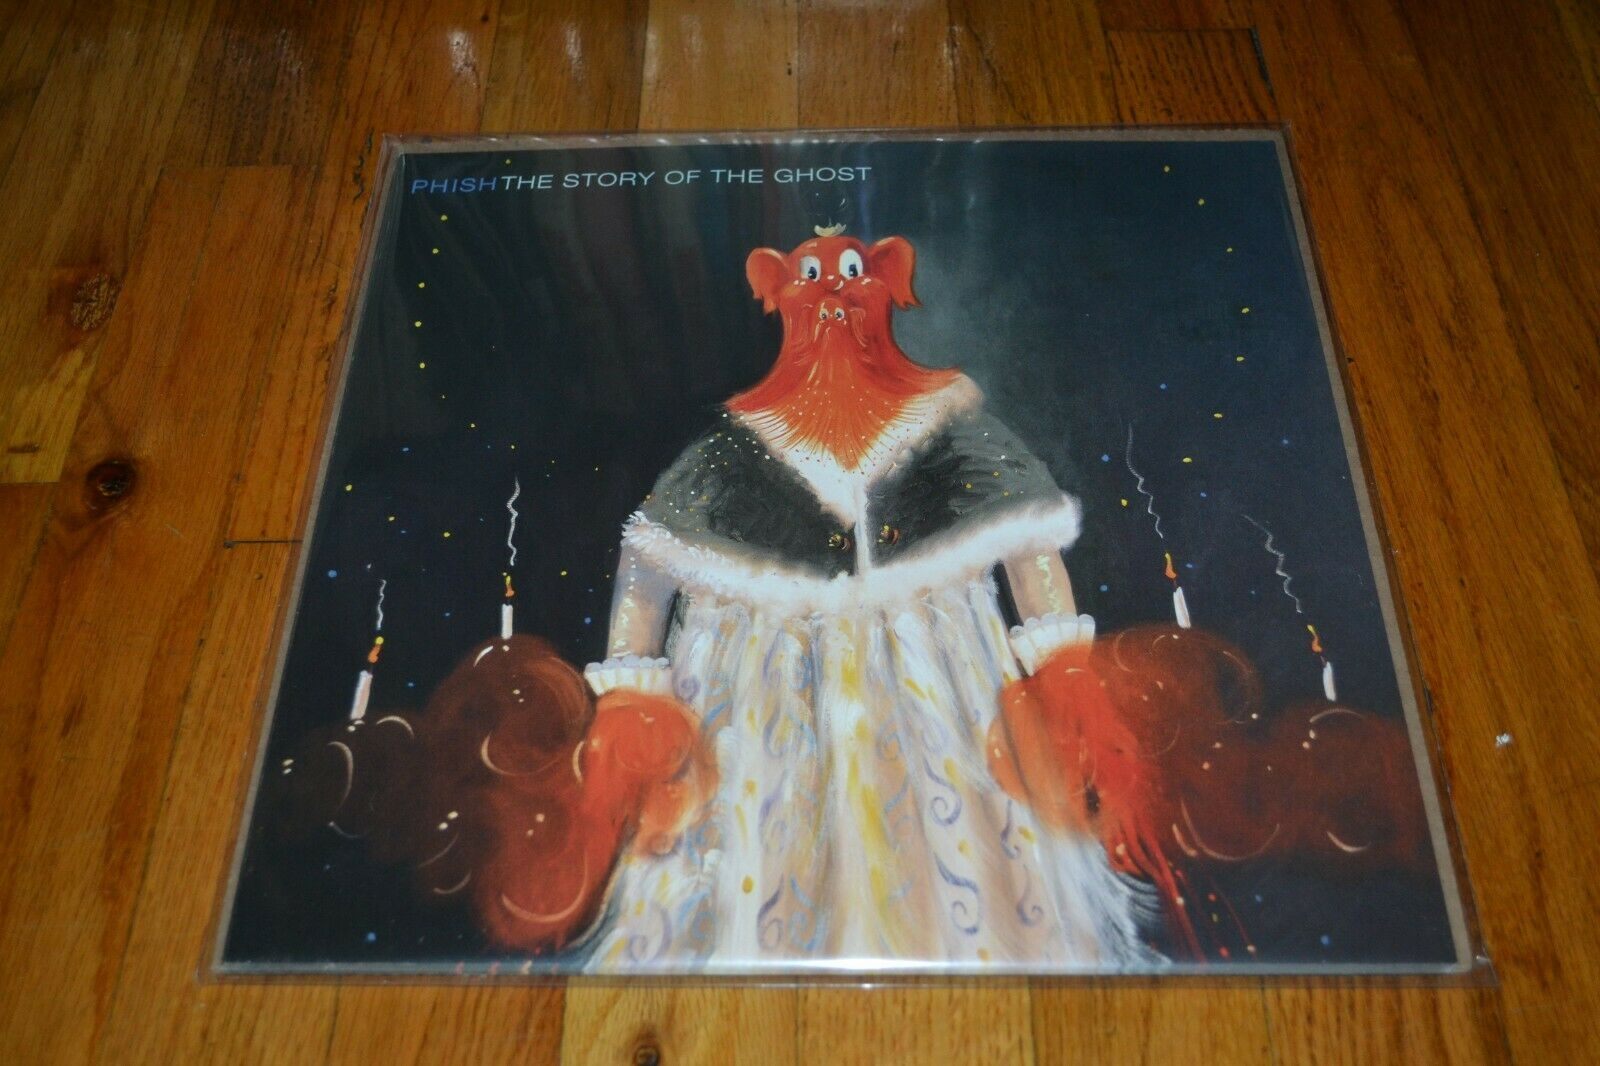 PHISH THE STORY OF THE GHOST LOT OF 8 RECORD ALBUM PROMO FLAT MINT - $7.99